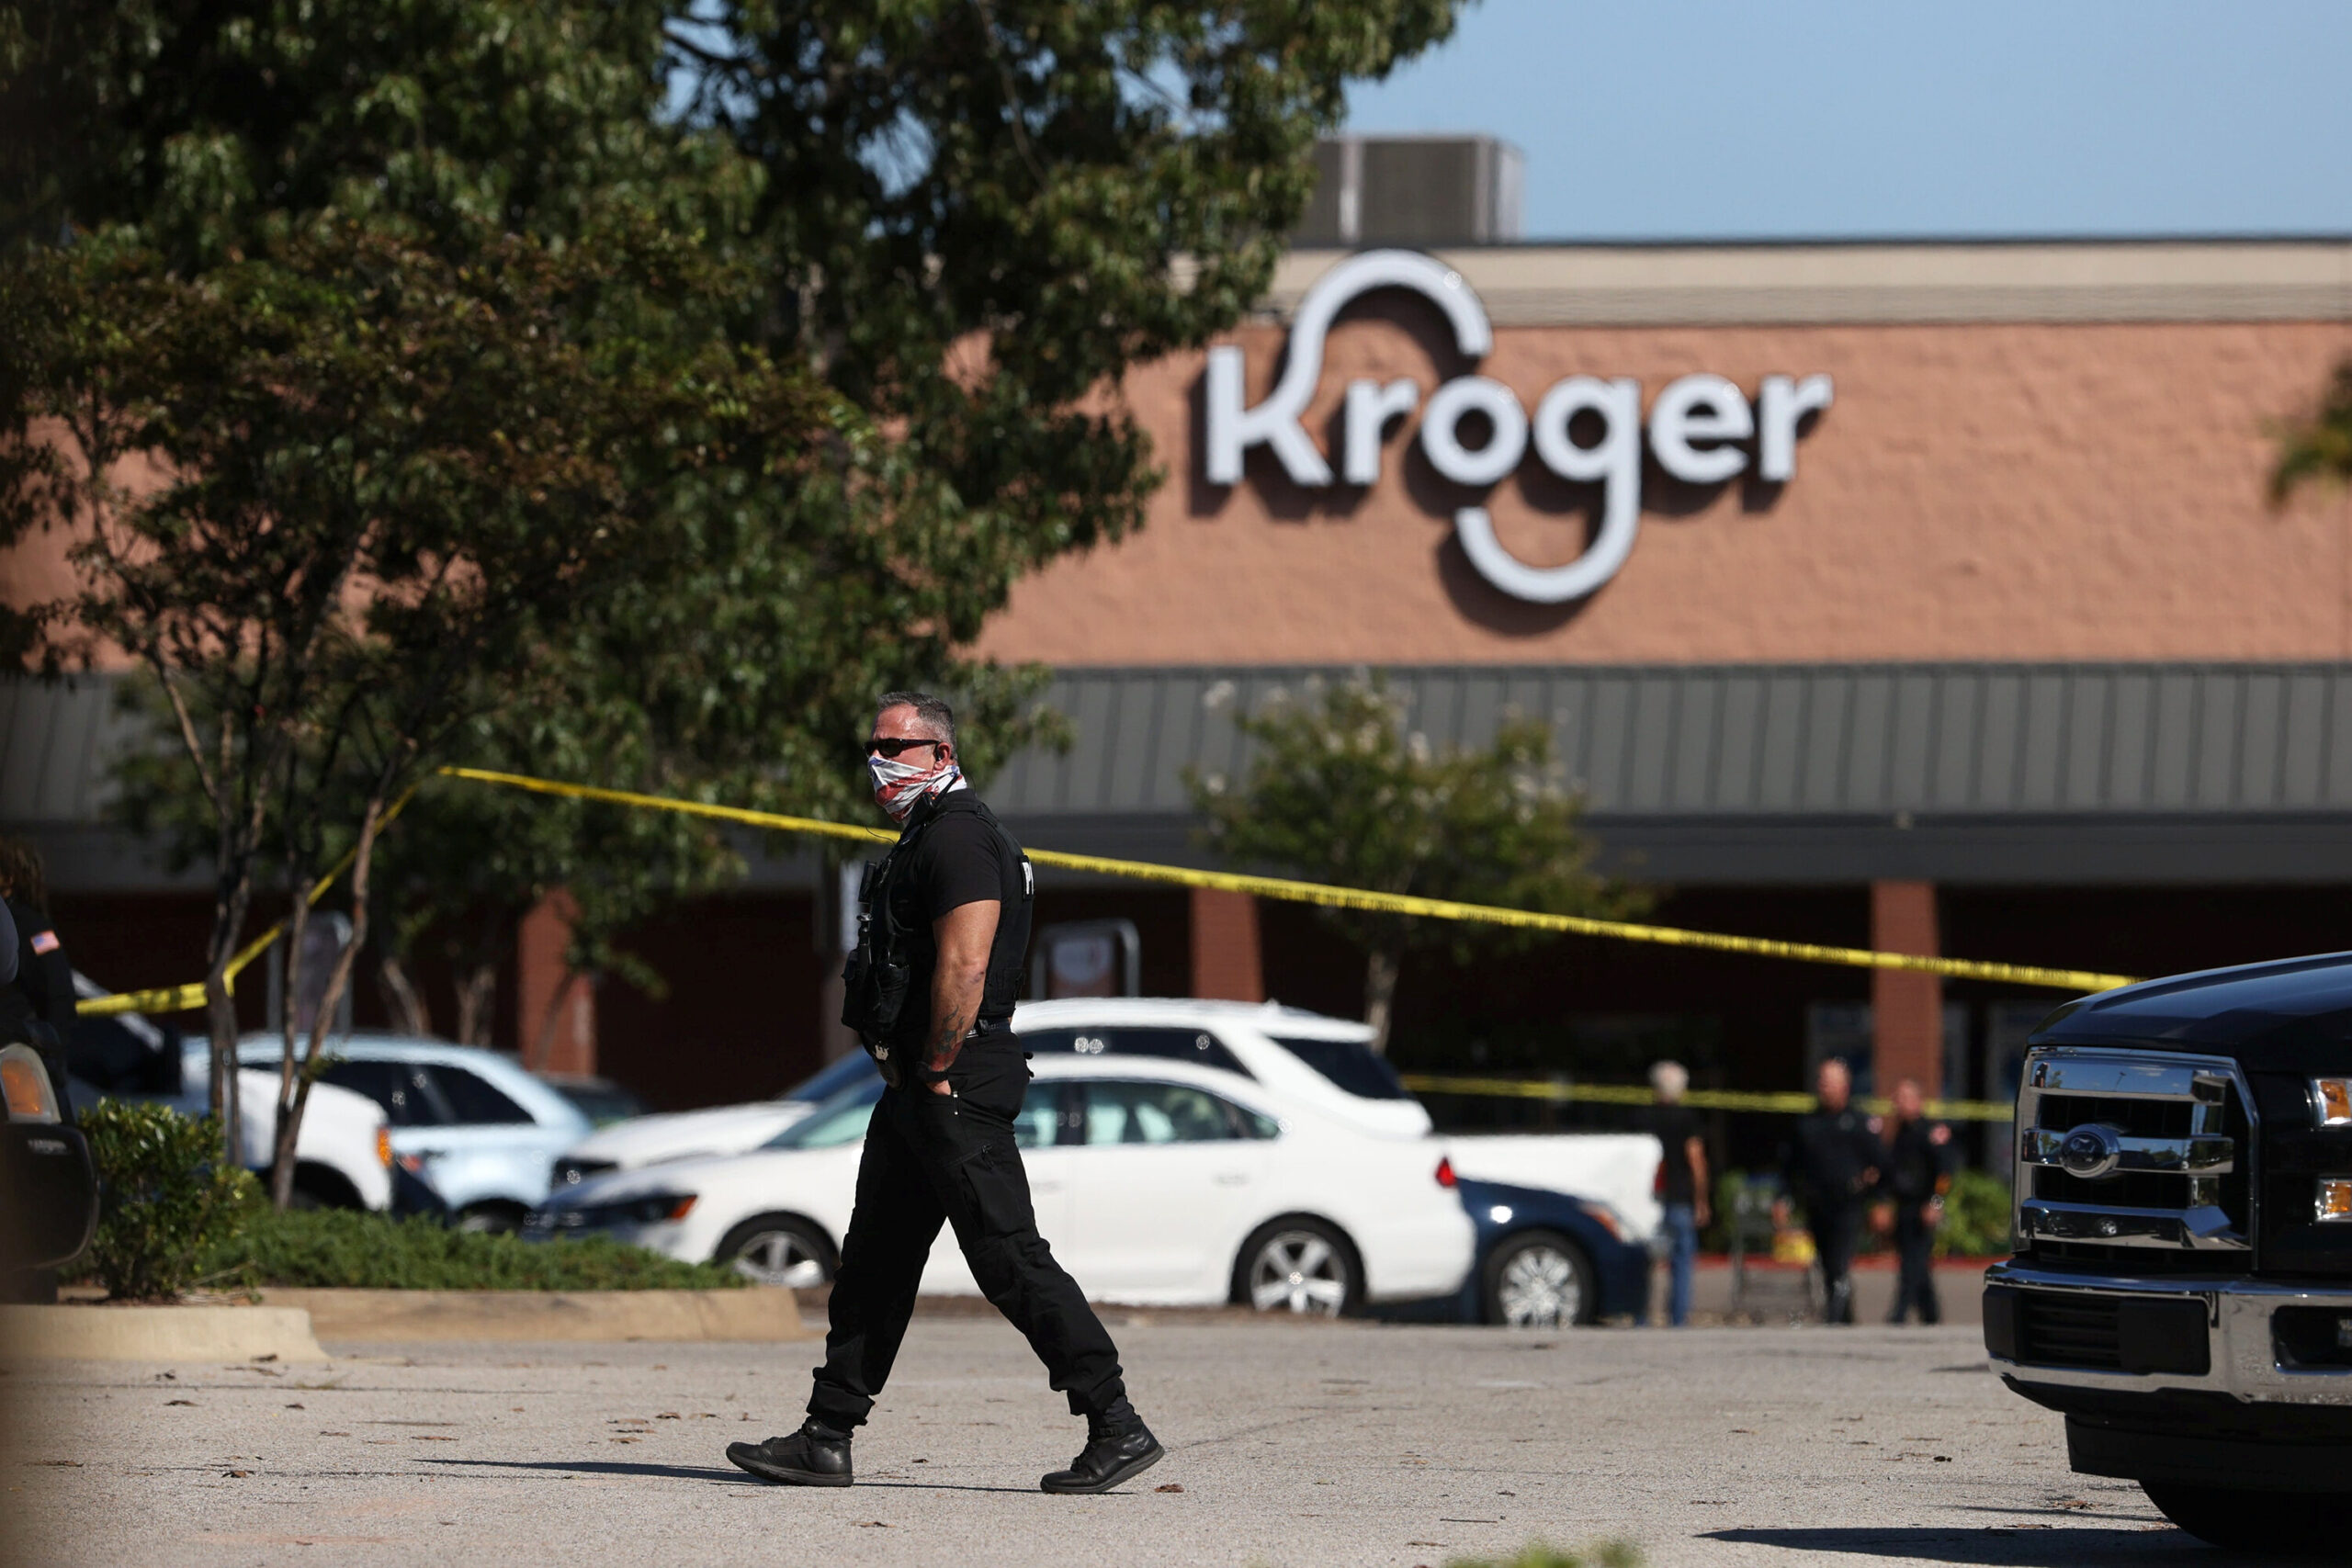 <i>Joe Rondone/The Commercial Appeal/USA Today/Reuters</i><br/>Emergency personnel respond to a shooting at a Kroger supermarket in suburban Memphis